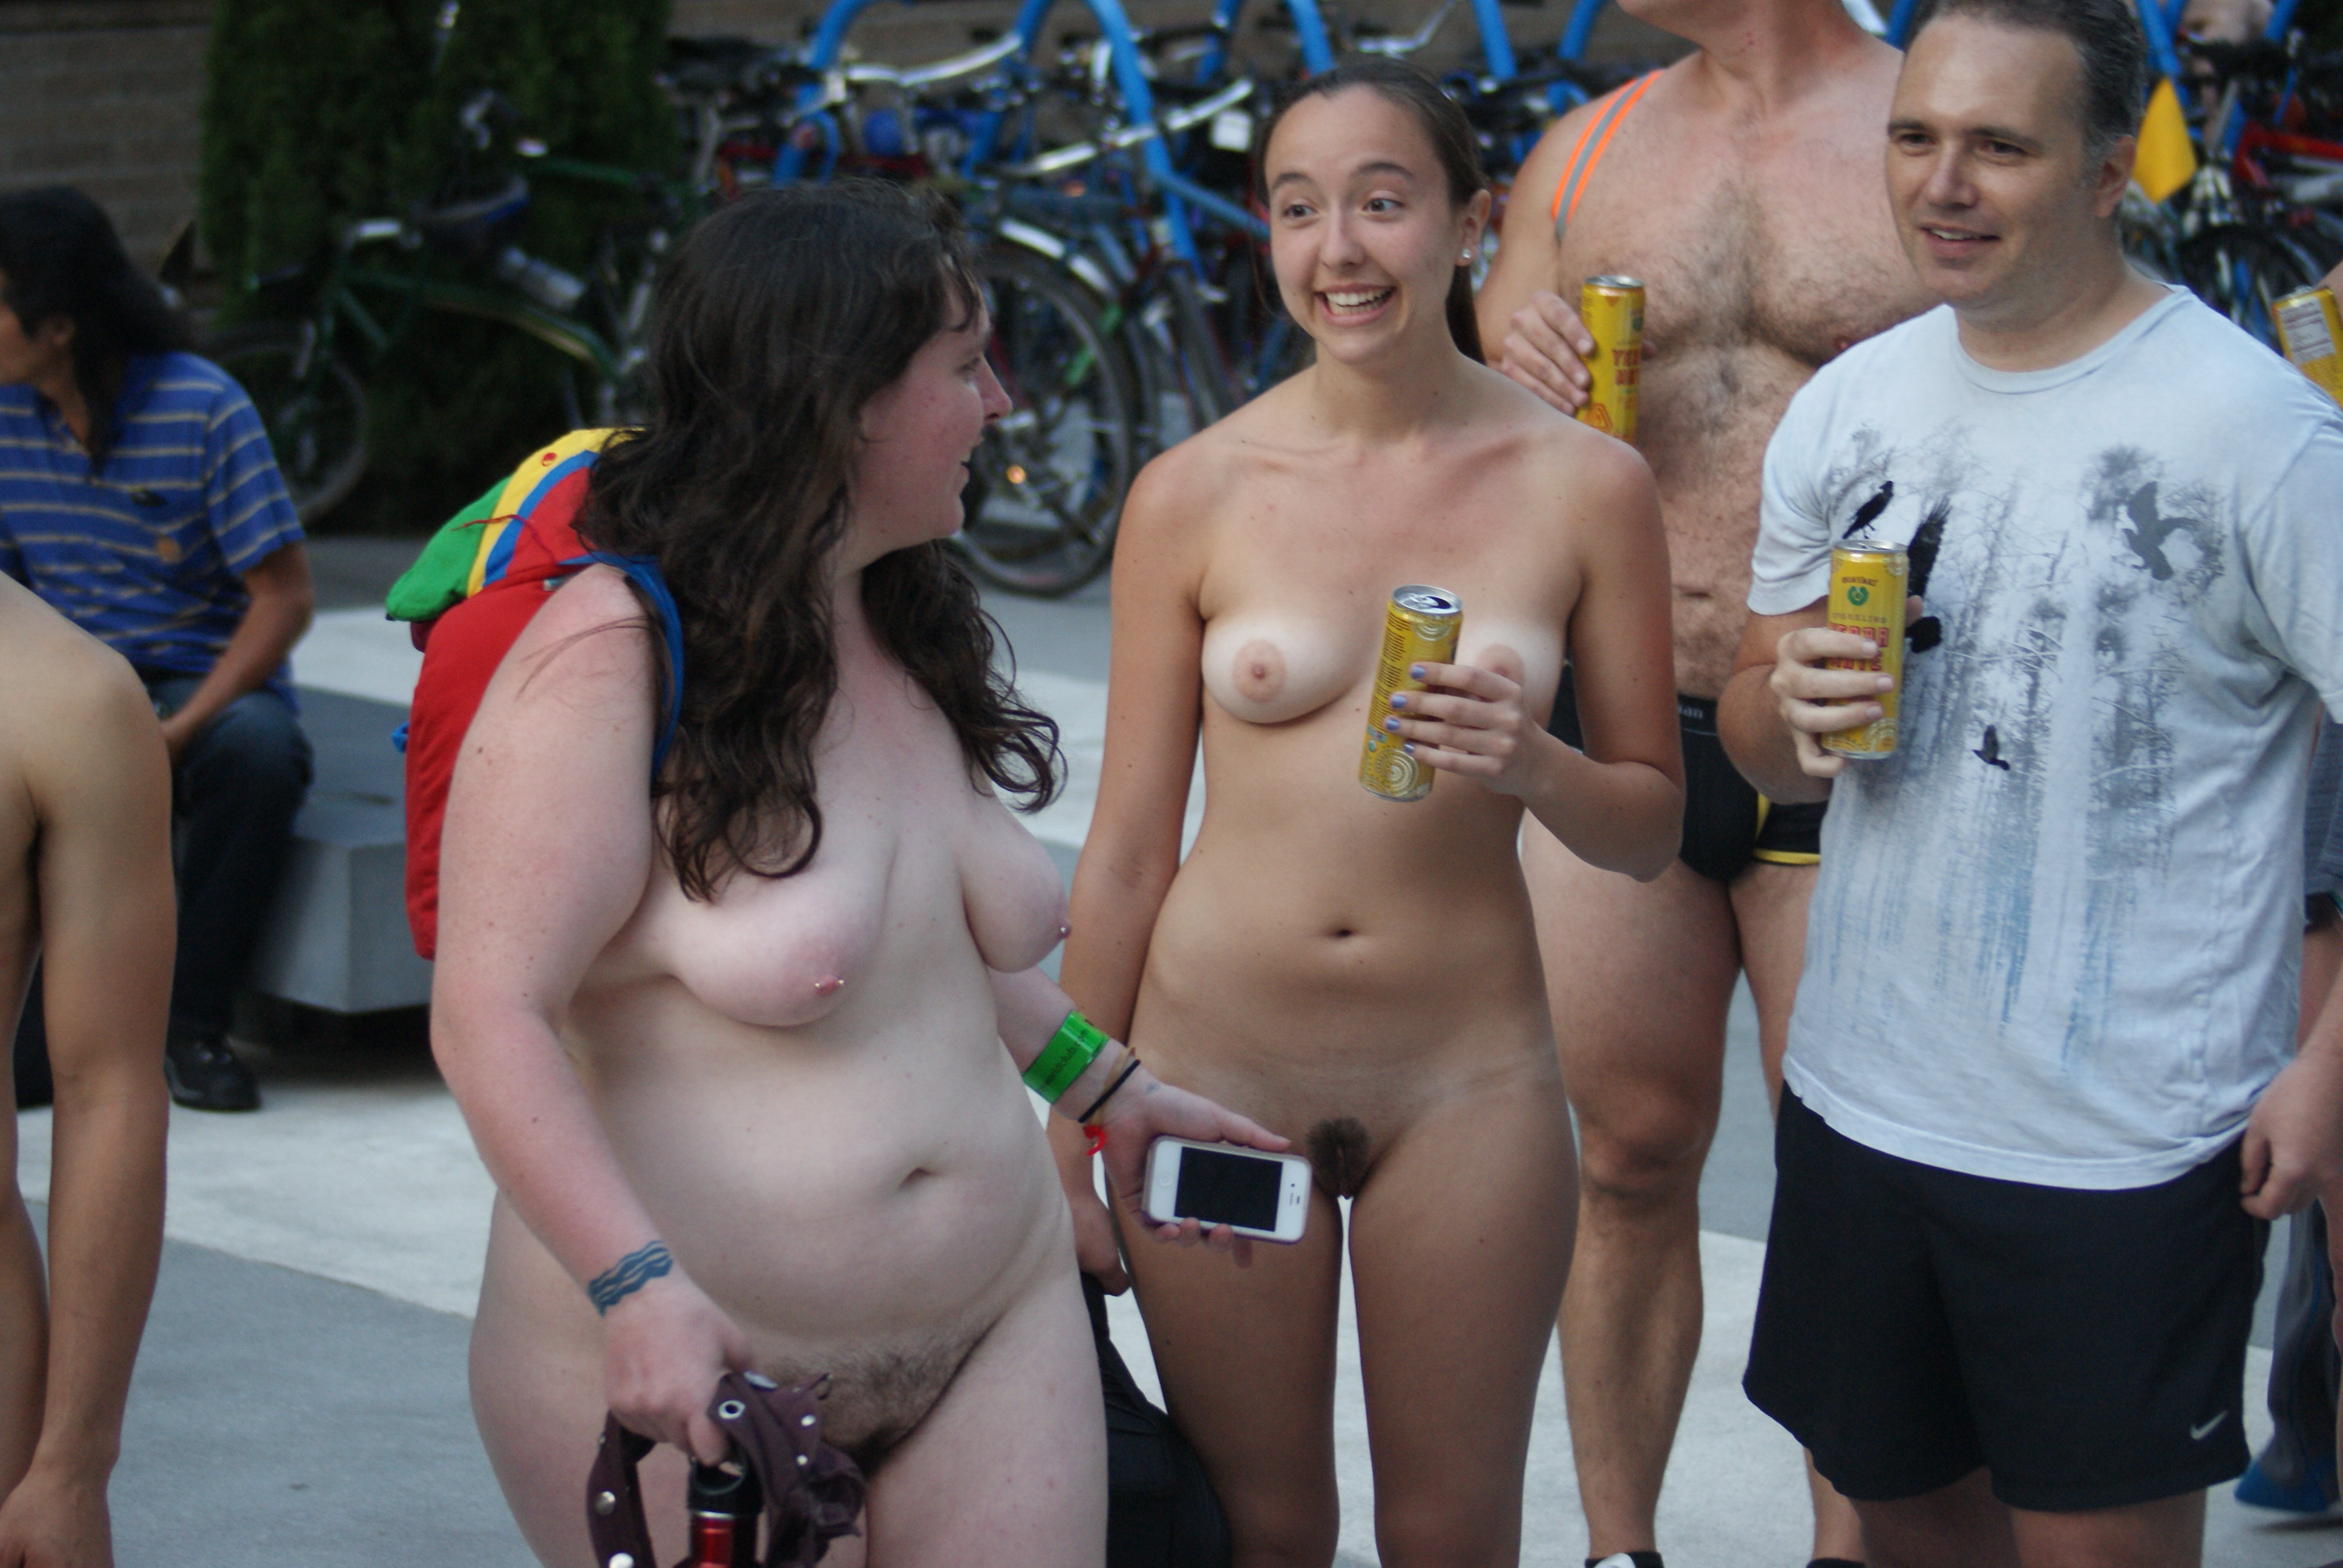 Your tits public nudity family erotic fingering